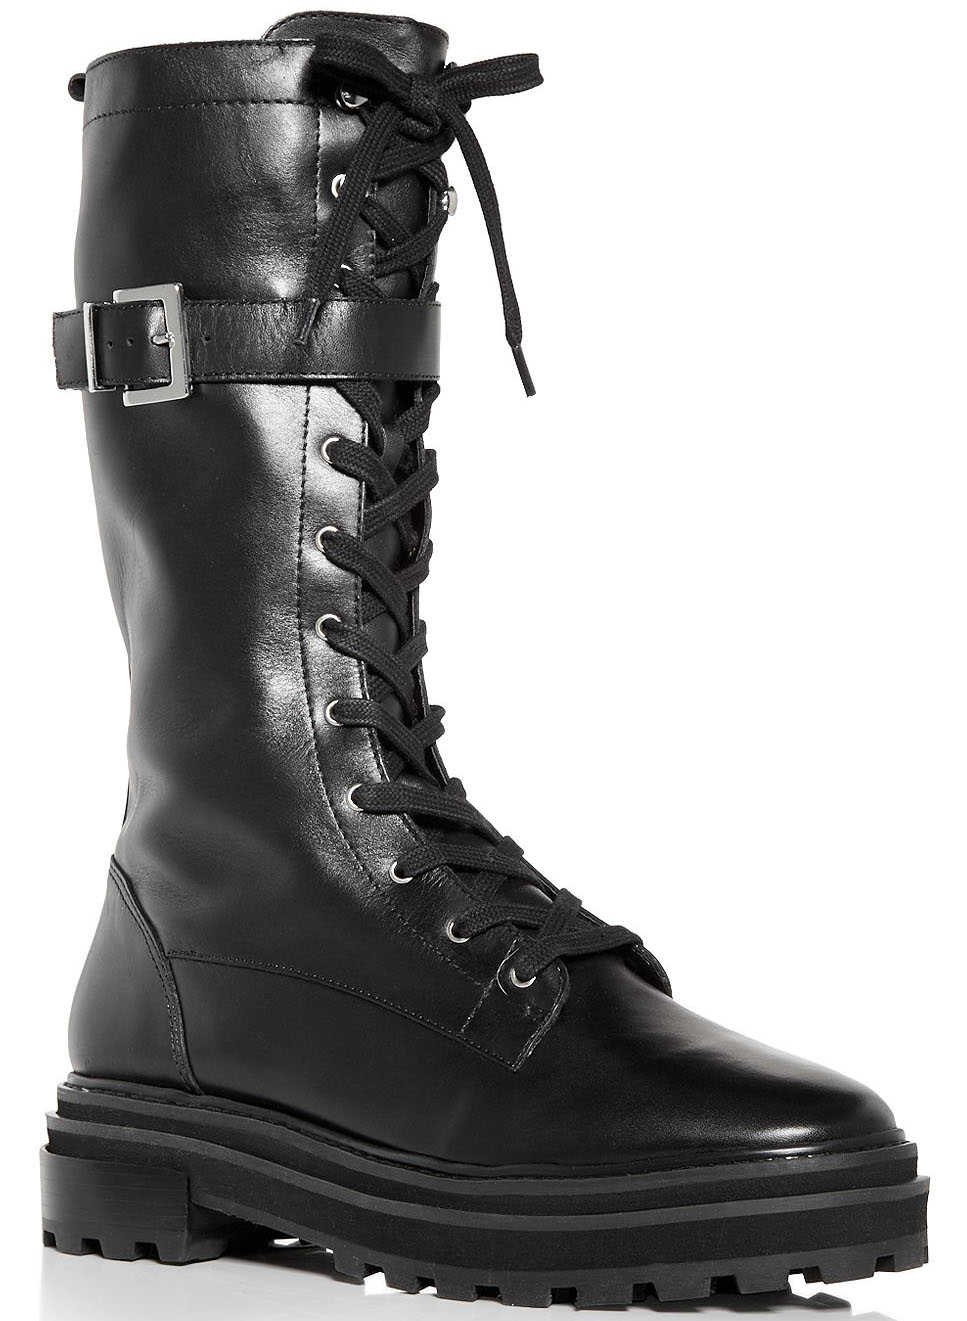 Schutz Moly combat boots feature removable buckled straps and thick platform heels